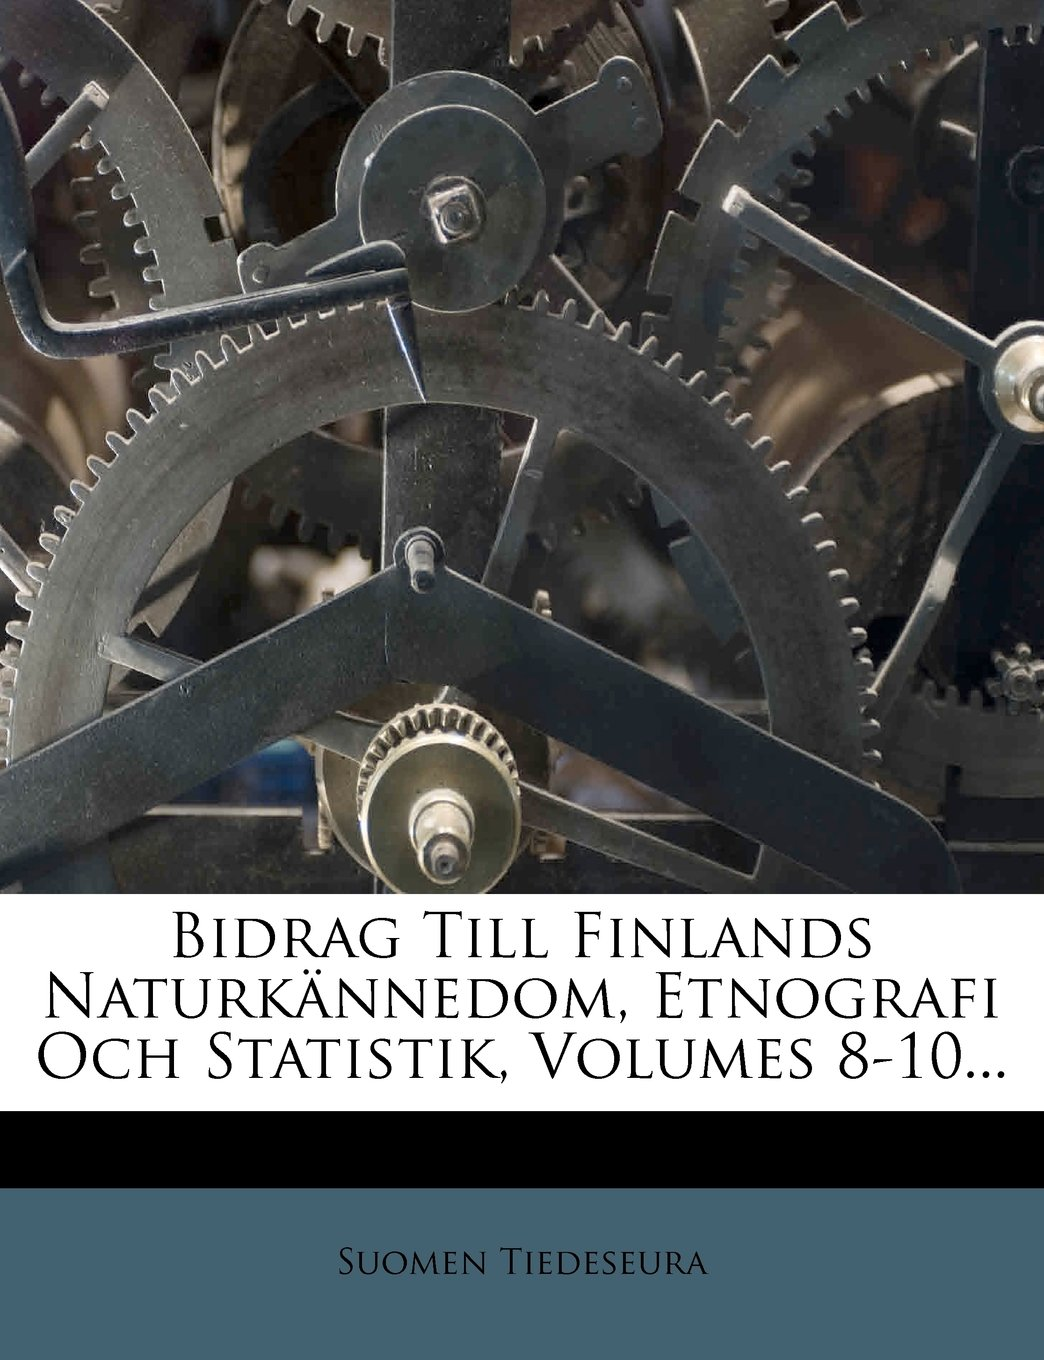 Download Bidrag Till Finlands Naturkännedom, Etnografi Och Statistik, Volumes 8-10... (Swedish Edition) PDF